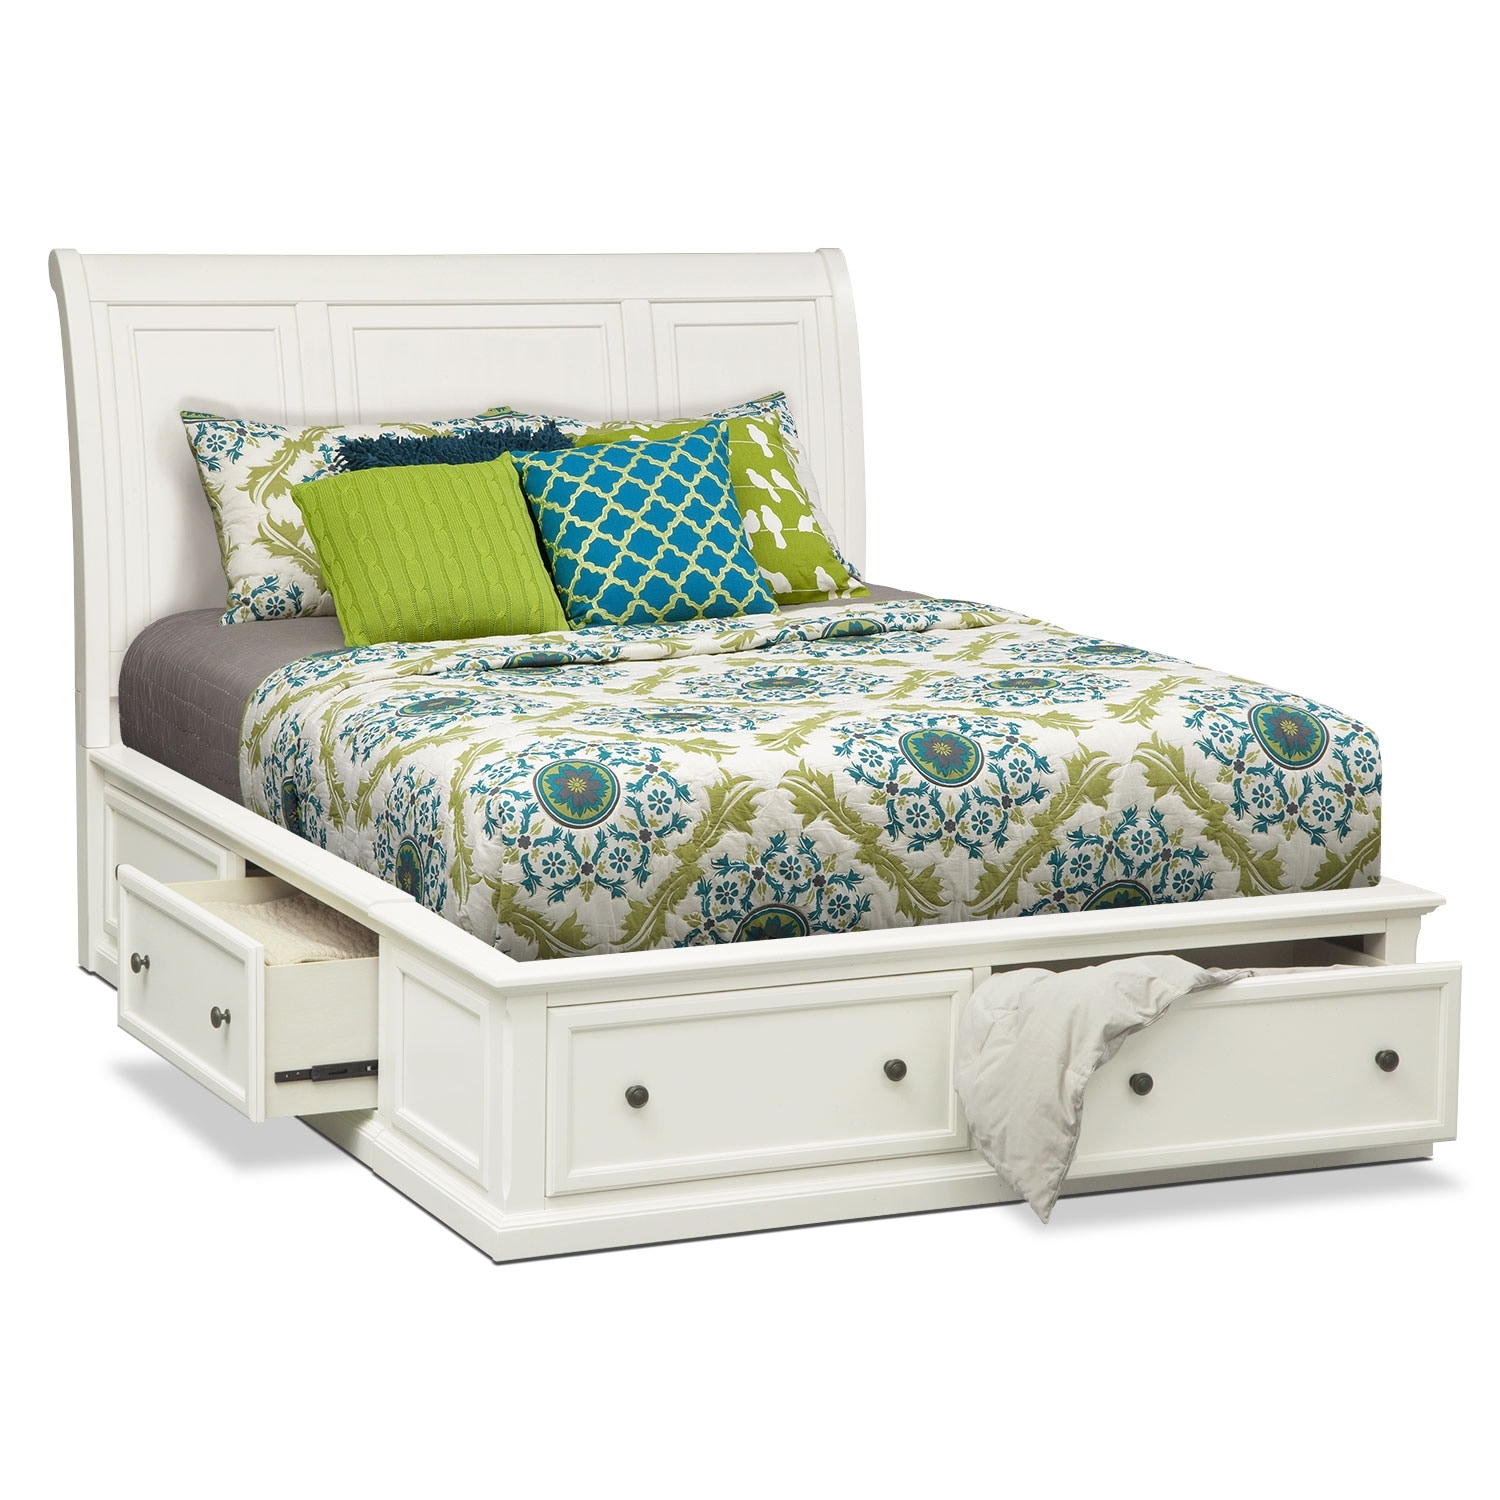 Bedroom Sets With Storage Beds hanover 6-piece queen storage bedroom set - white | value city